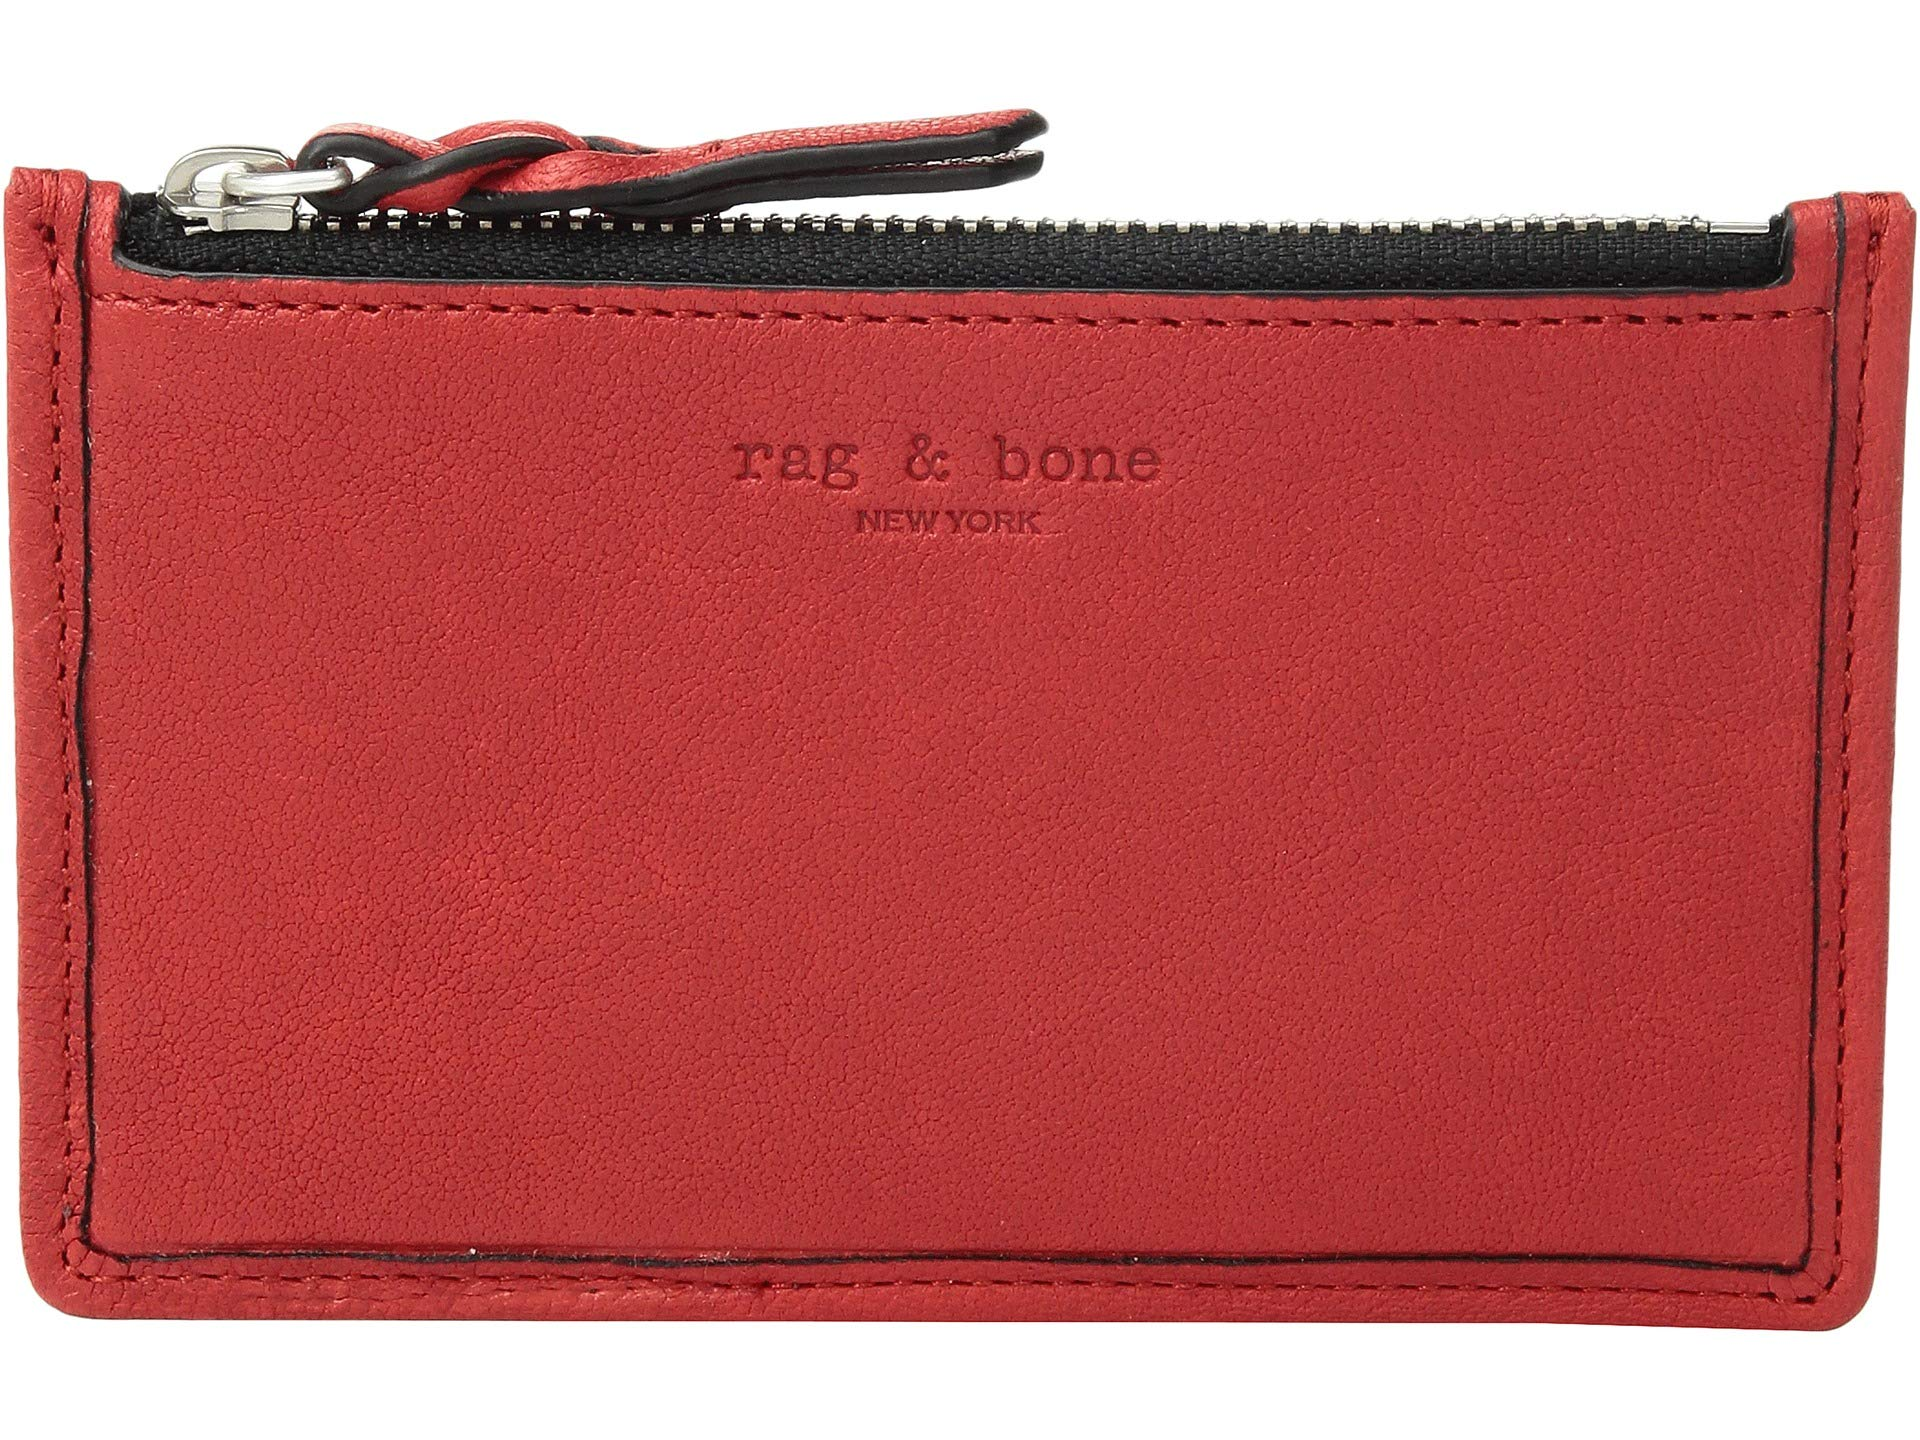 Card Case Zip Red Field Rag amp; Fiery Bone SwIOqS4Tz